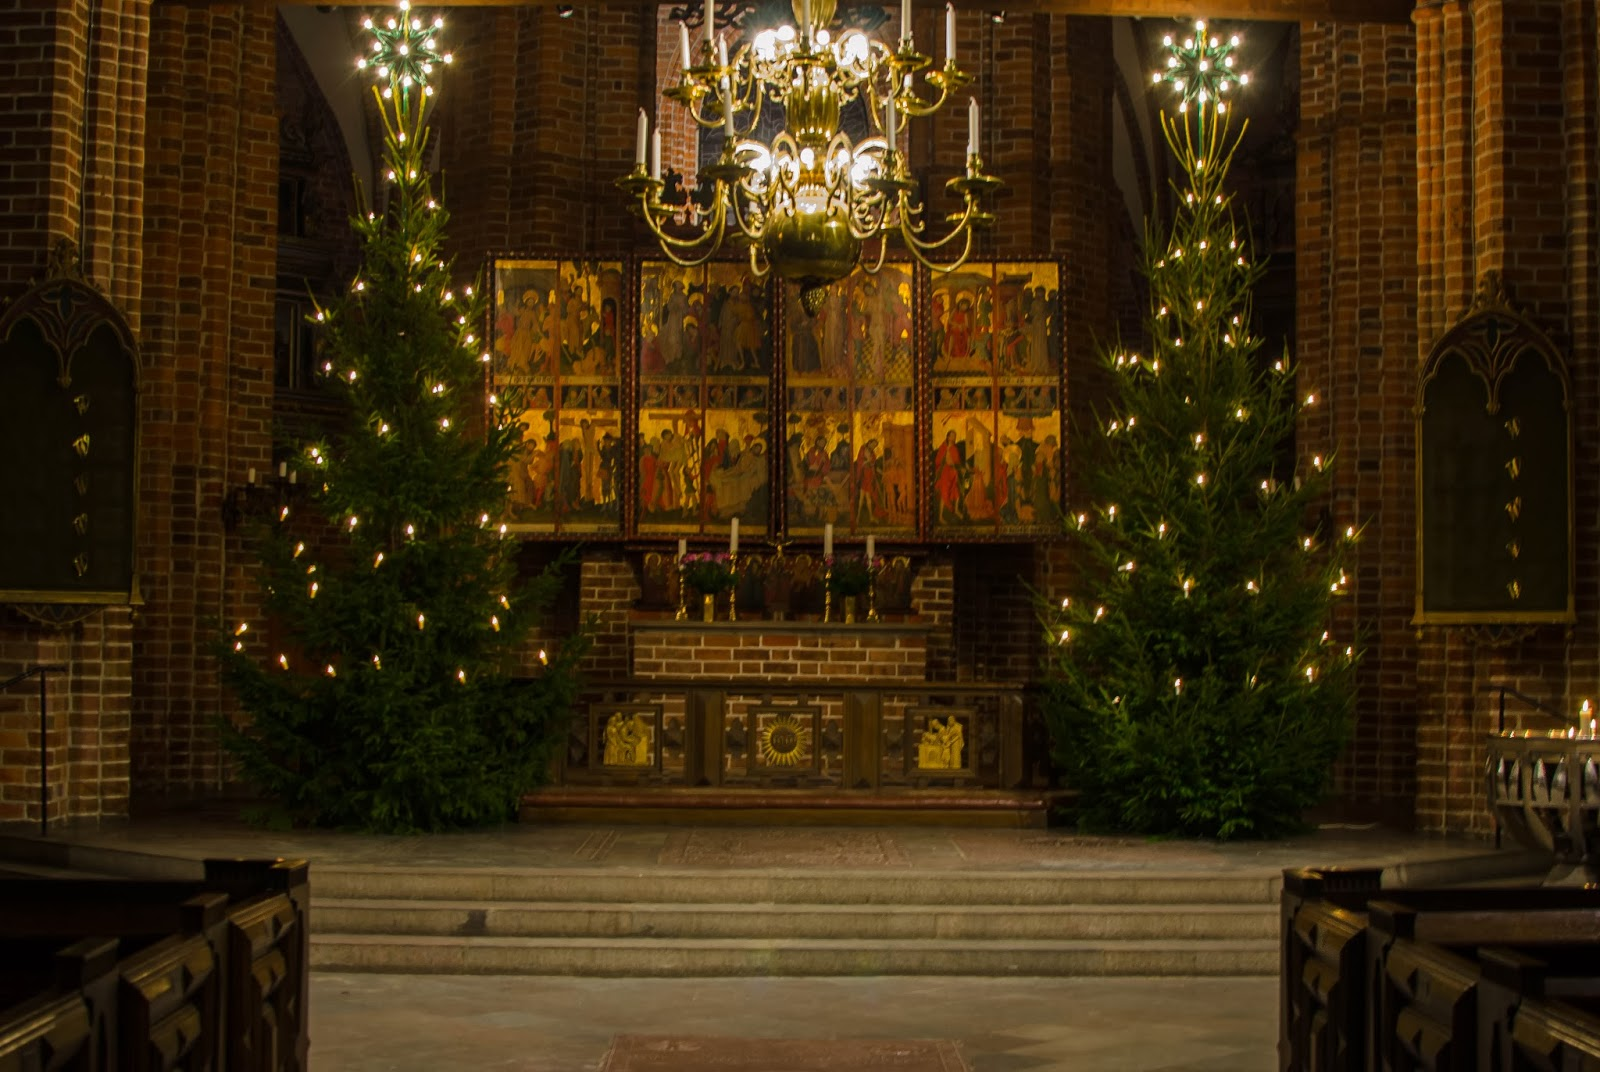 The Things I Enjoy: Christmas Trees In The Medieval Church